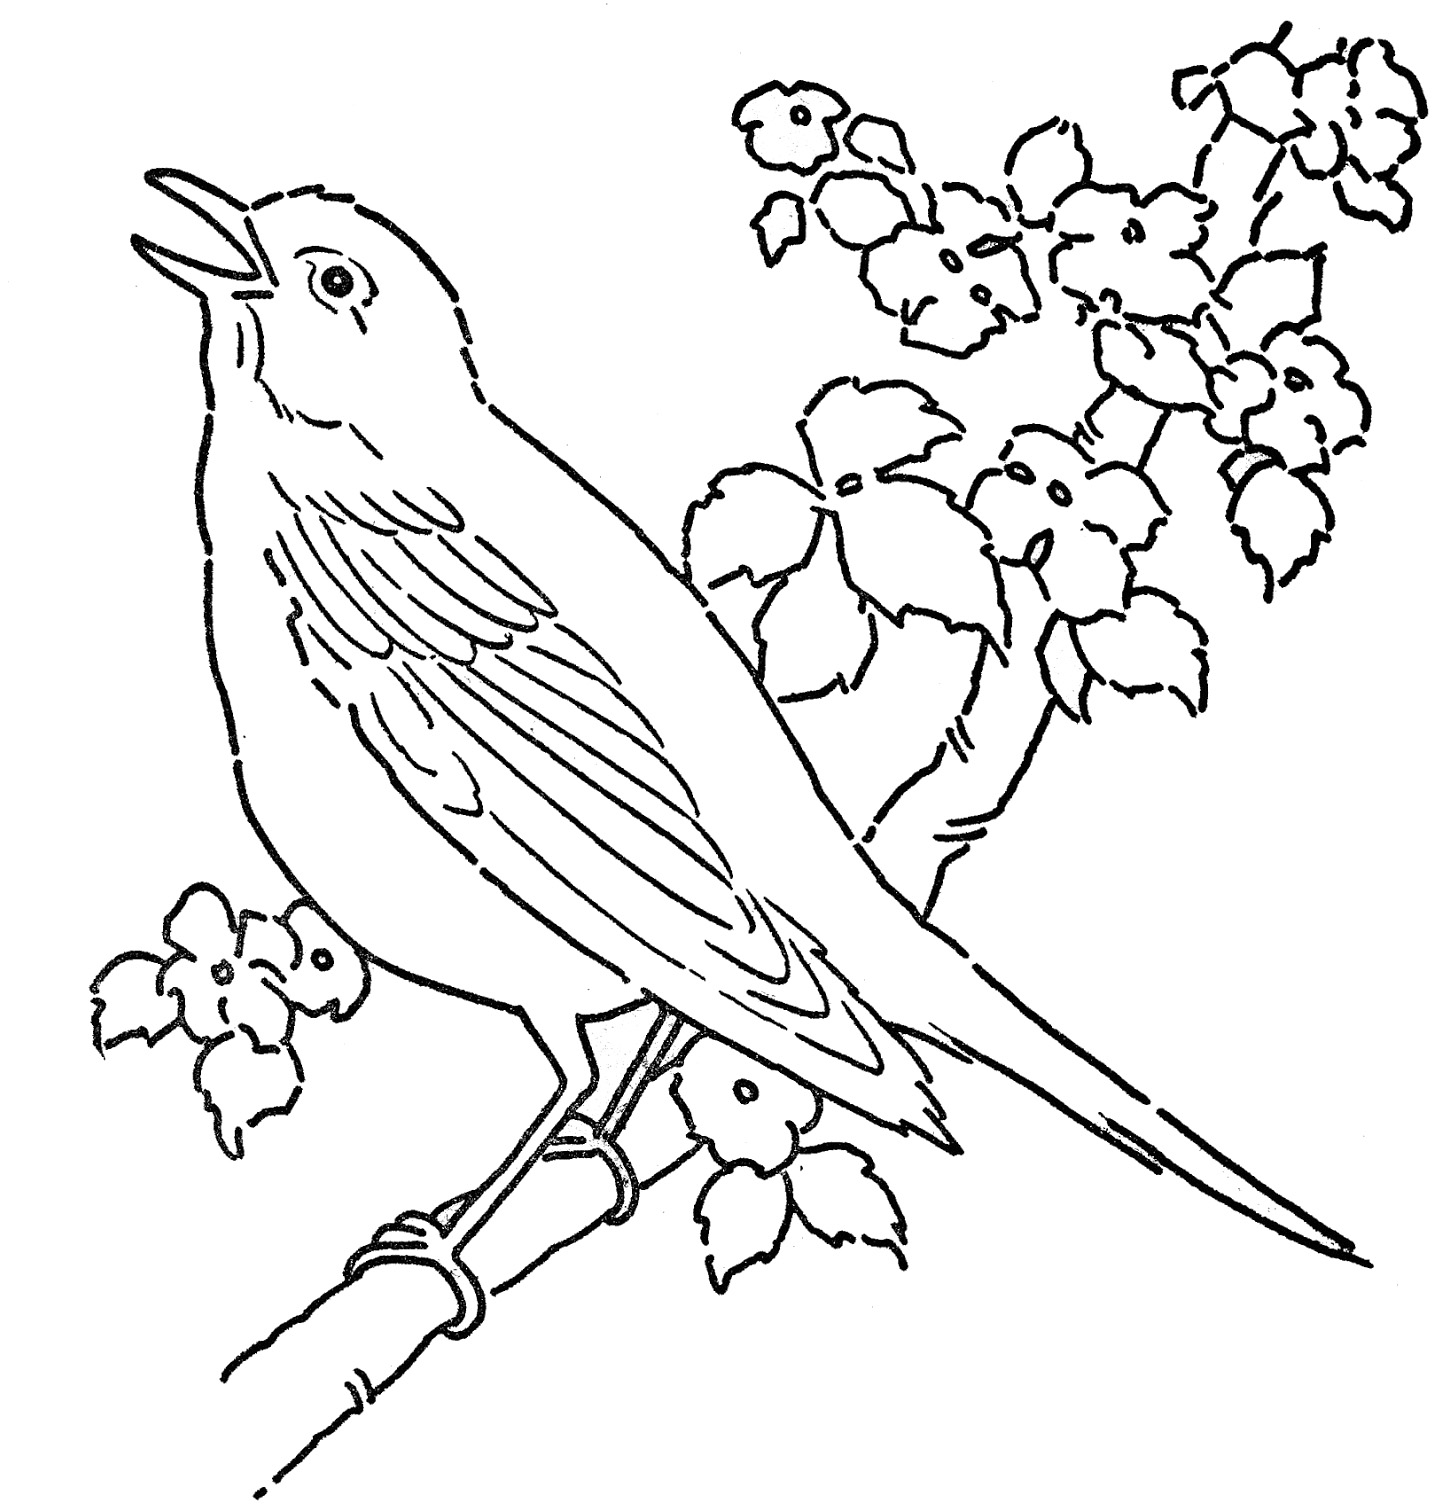 bird printable coloring pages cute tweety bird coloring pages free printable cute bird coloring printable pages